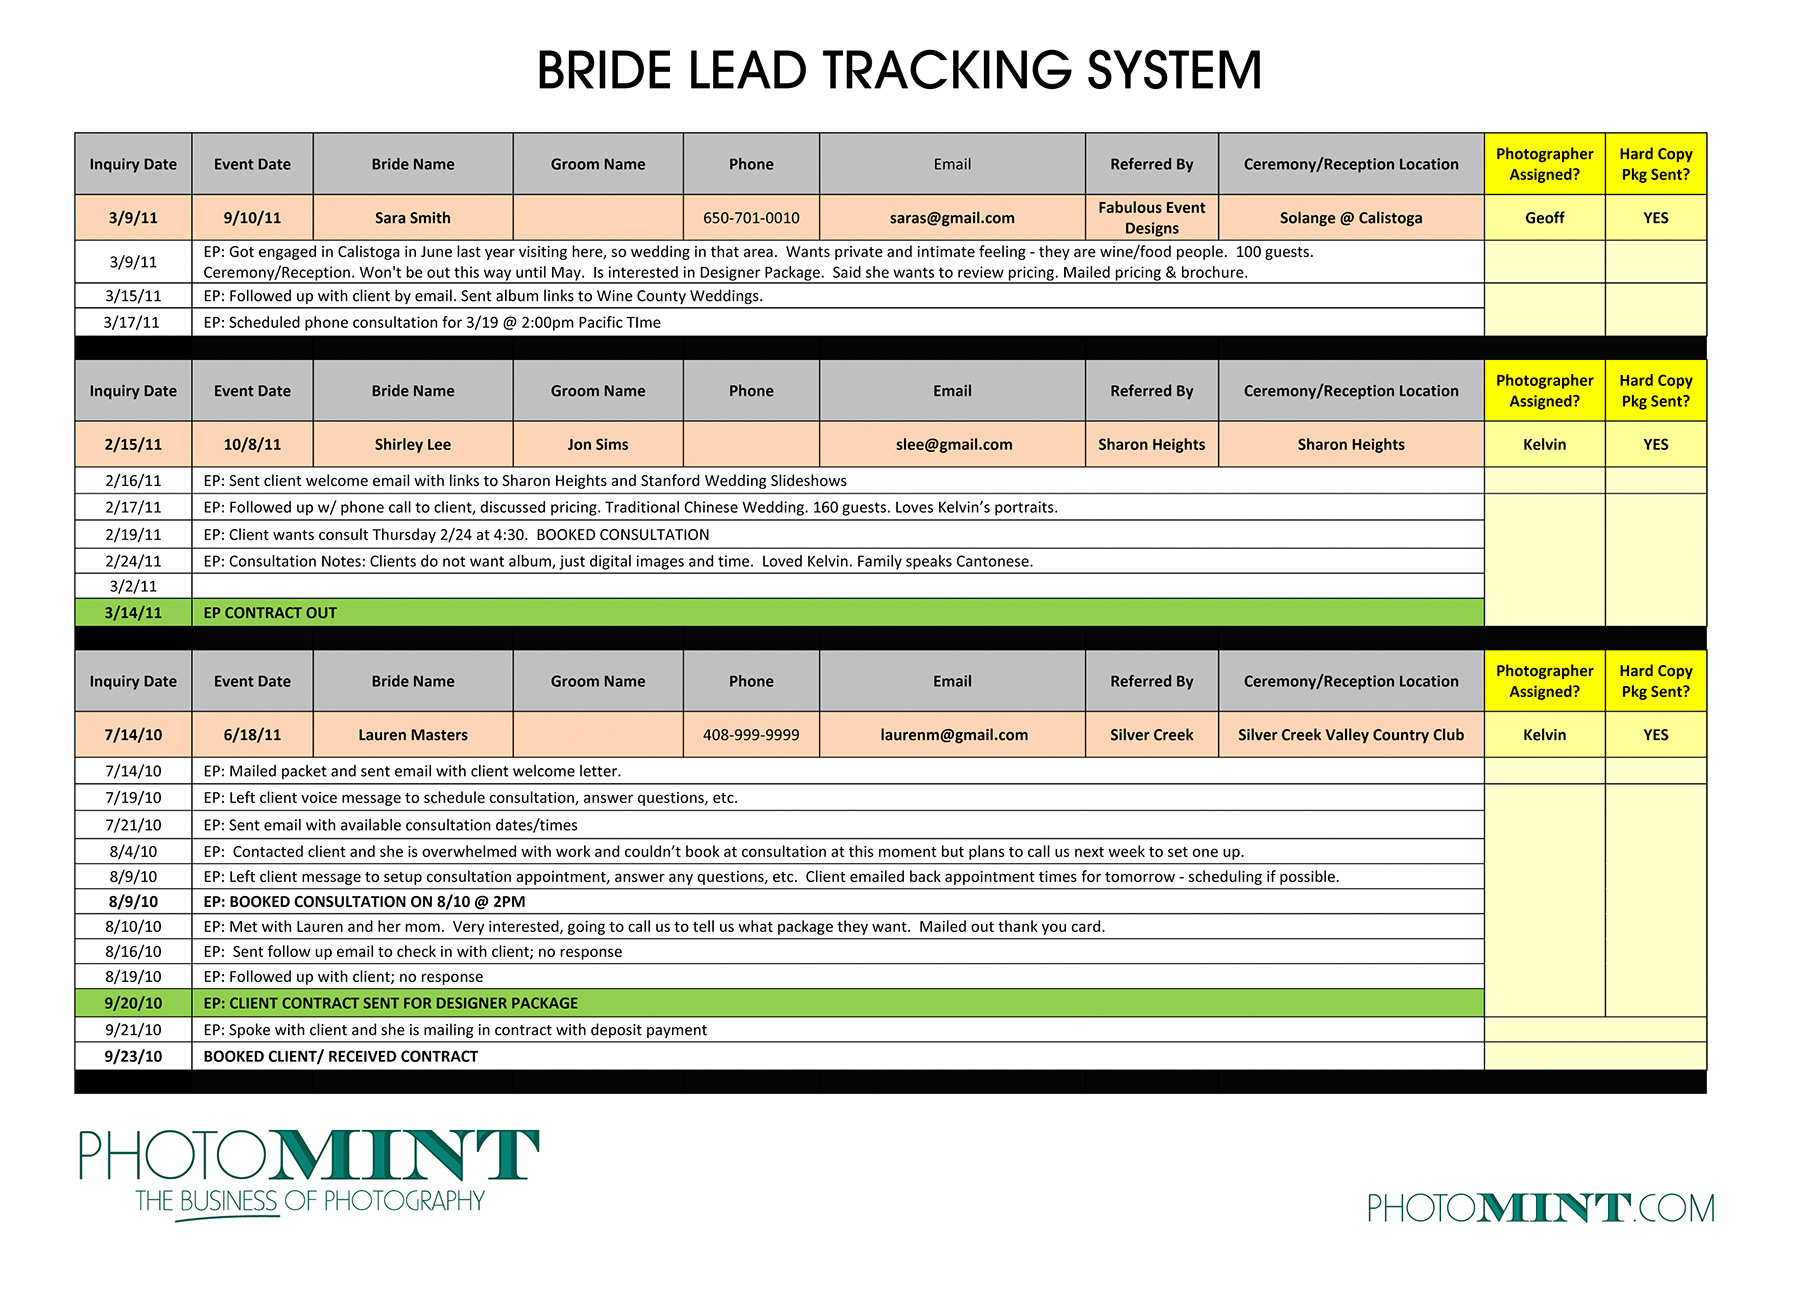 Client Tracking Spreadsheet With Client Tracking Spreadsheet  Homebiz4U2Profit